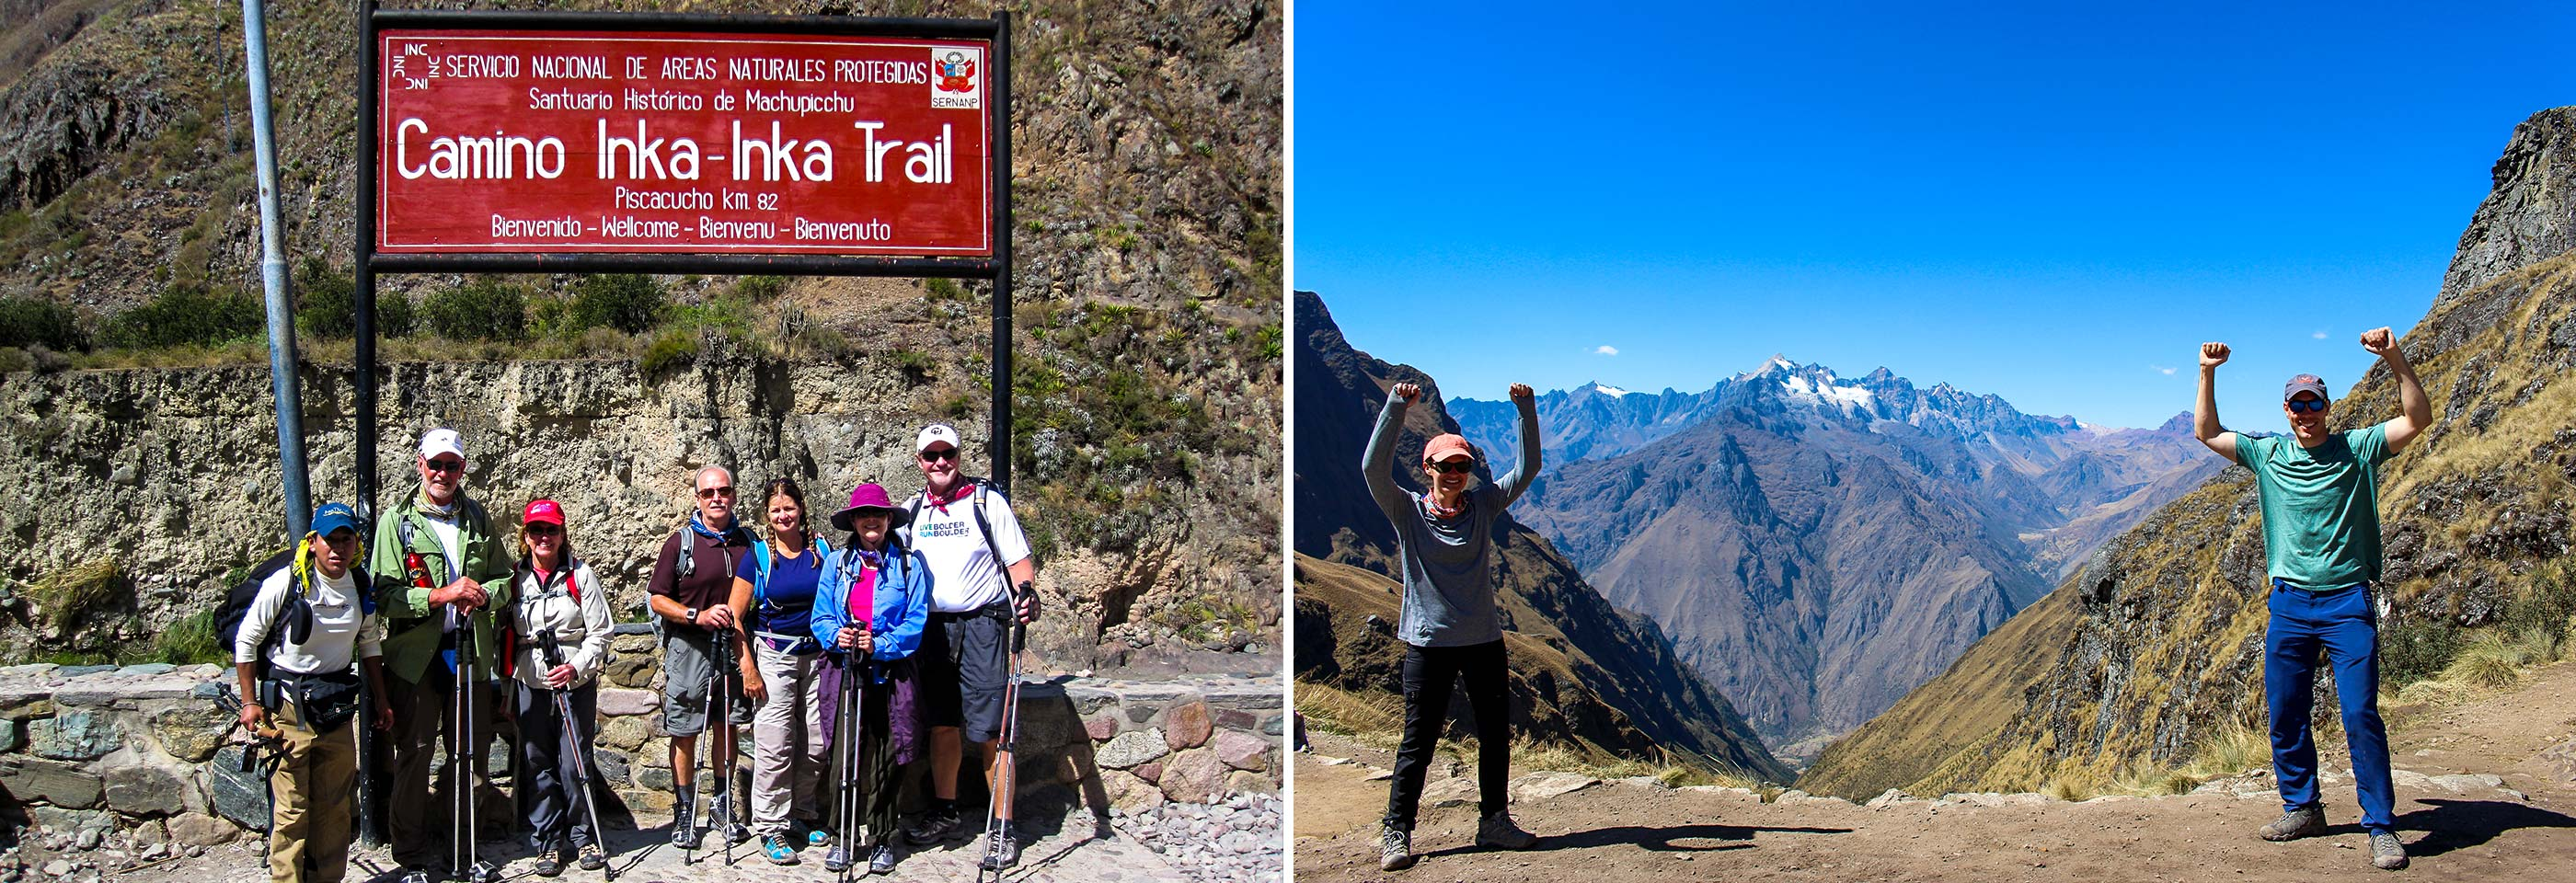 Inca Trail to Machu Picchu Tours in Cusco